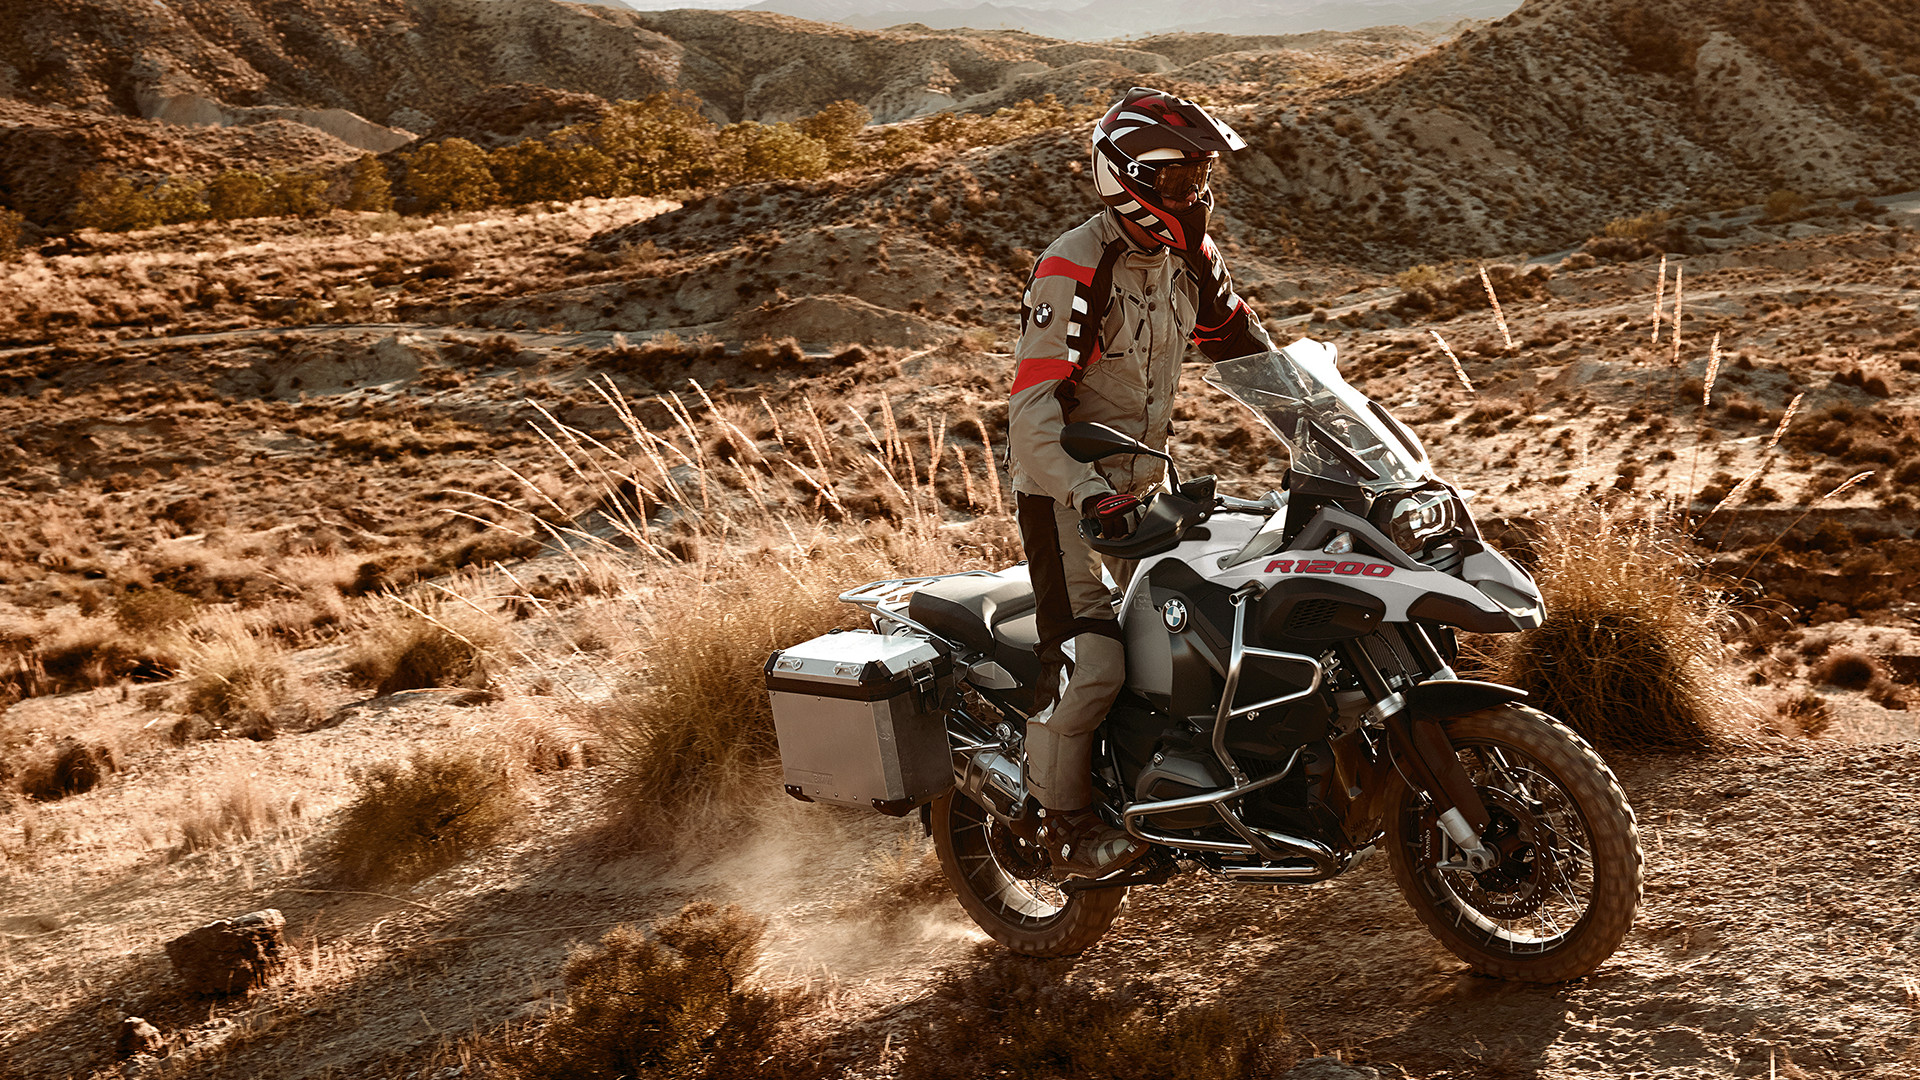 2016 - 2017 BMW R 1200 GS / R 1200 GS Adventure Review - Top Speed